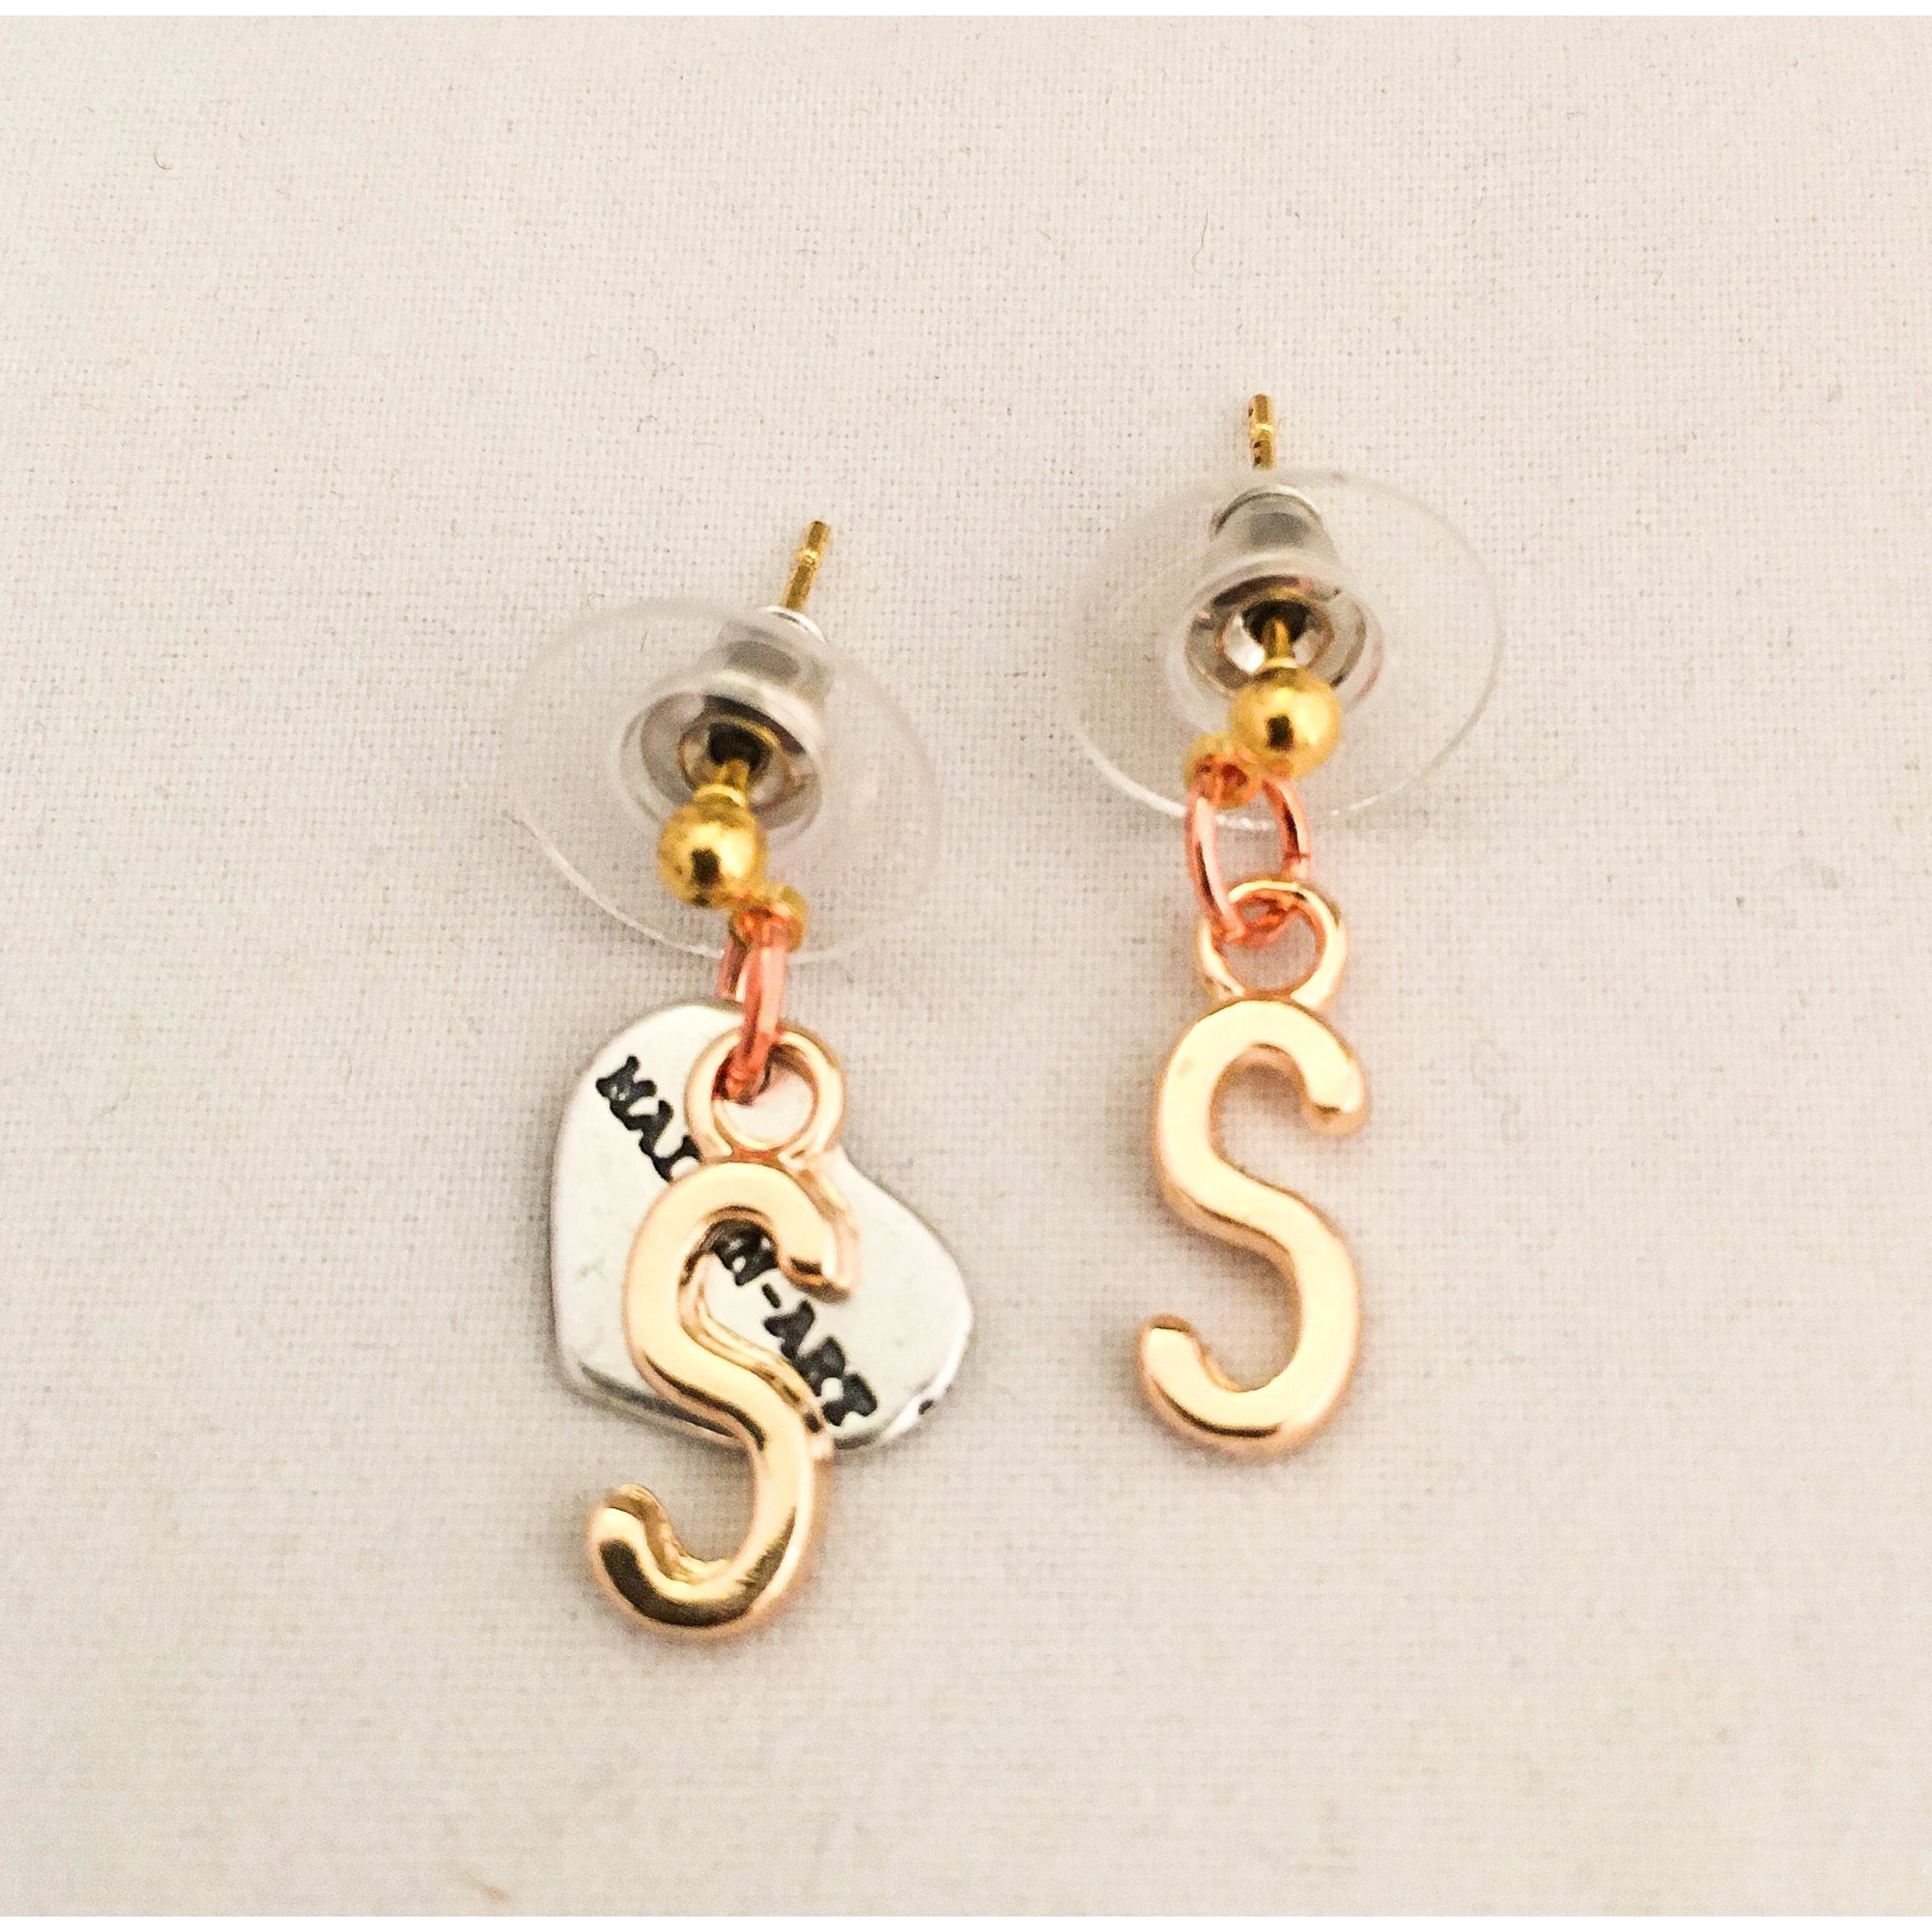 Initial Earrings Stud in 18kt Gold Plated Brass